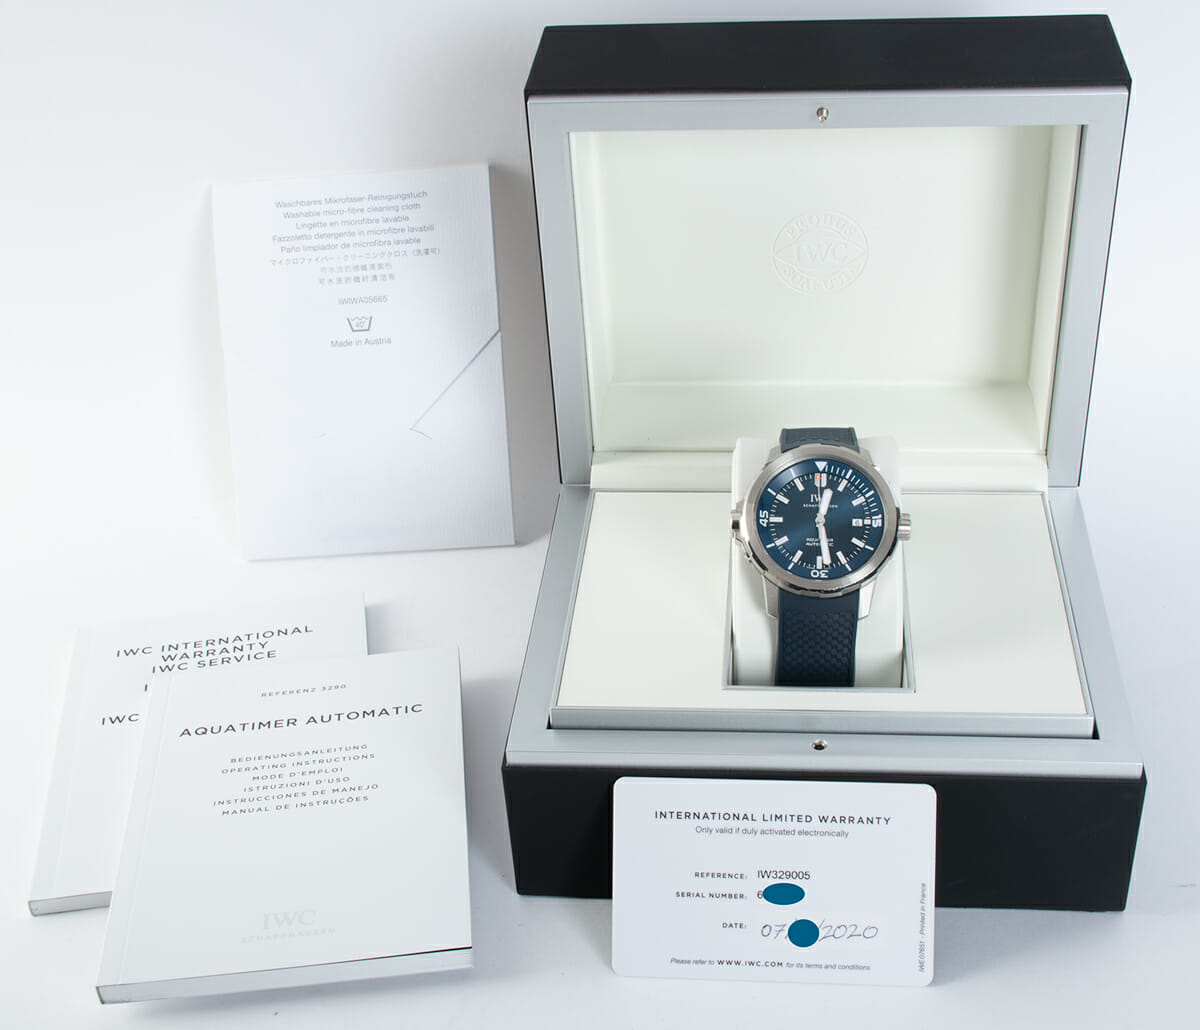 Box / Paper shot of Aquatimer 'Expedition Jacques-Yves Cousteau'